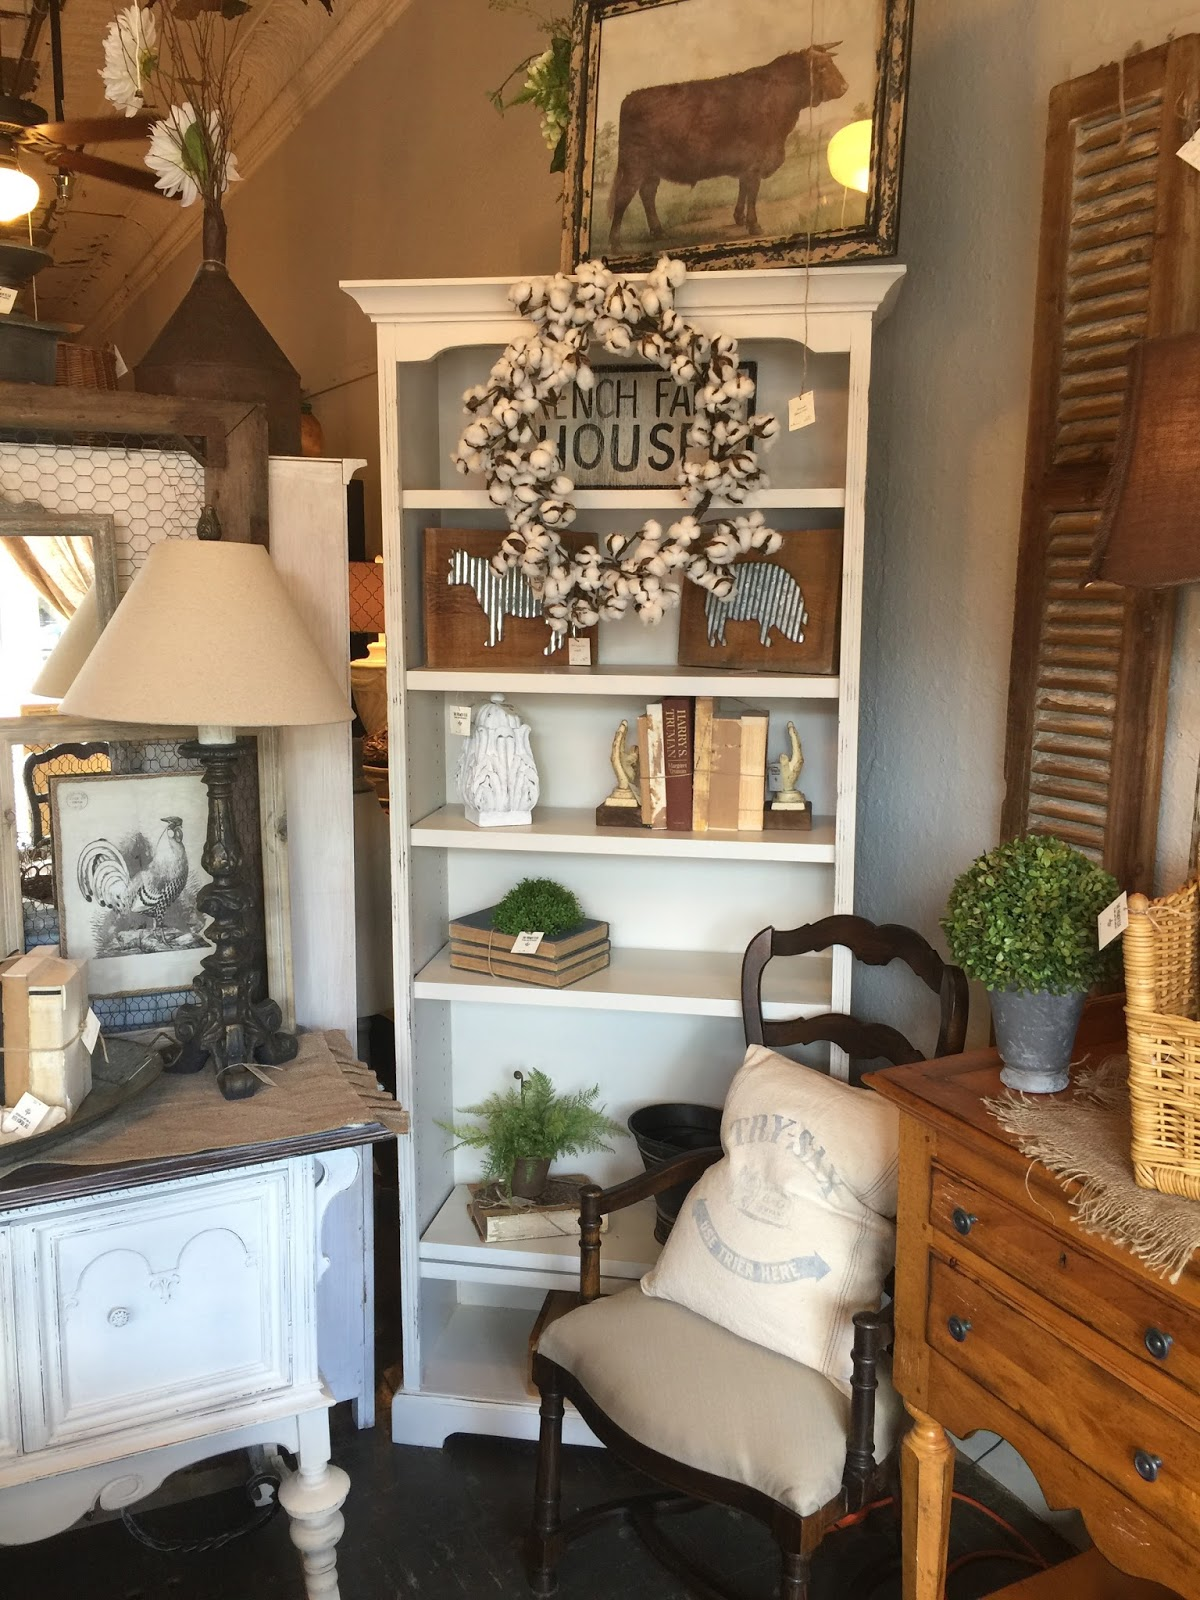 The french flea french country farmhouse august 11 14th for French country farmhouse